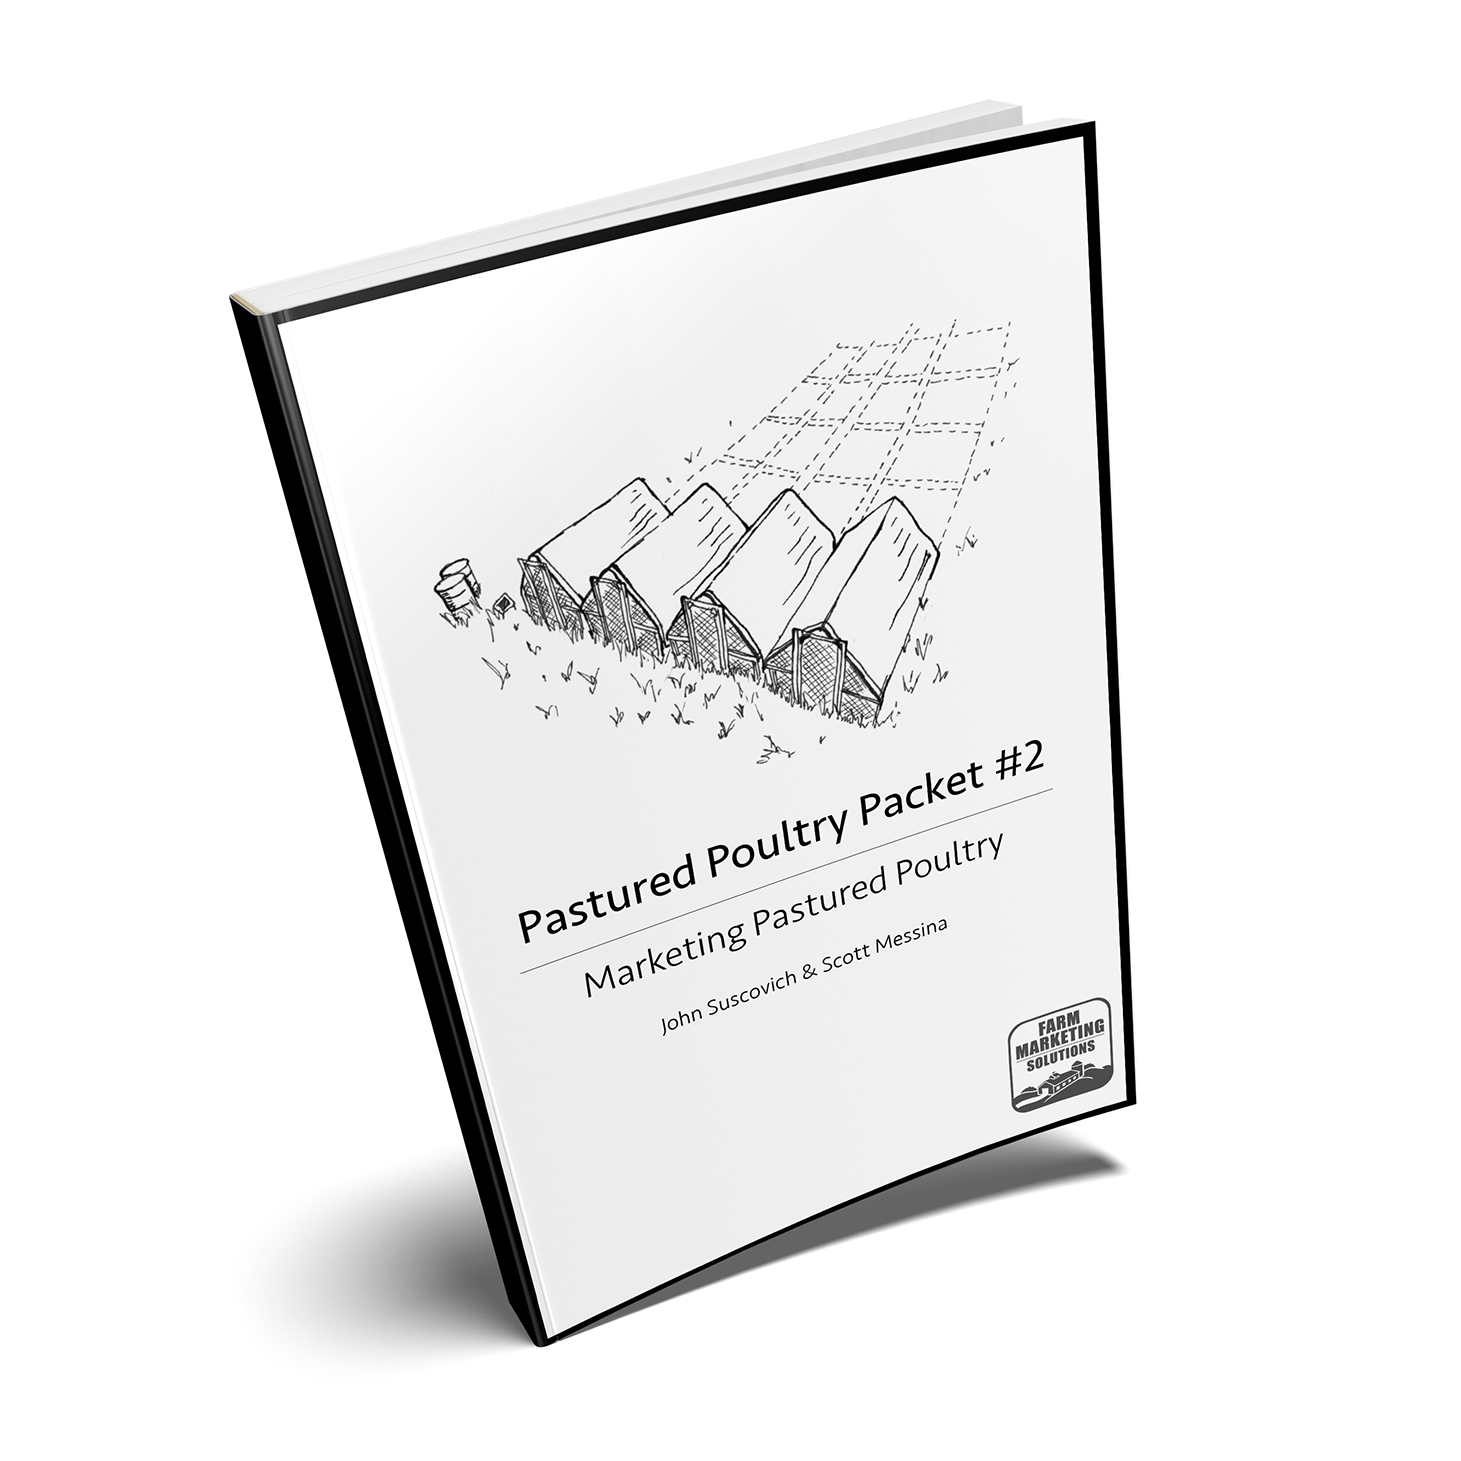 pastured poultry packet pdf